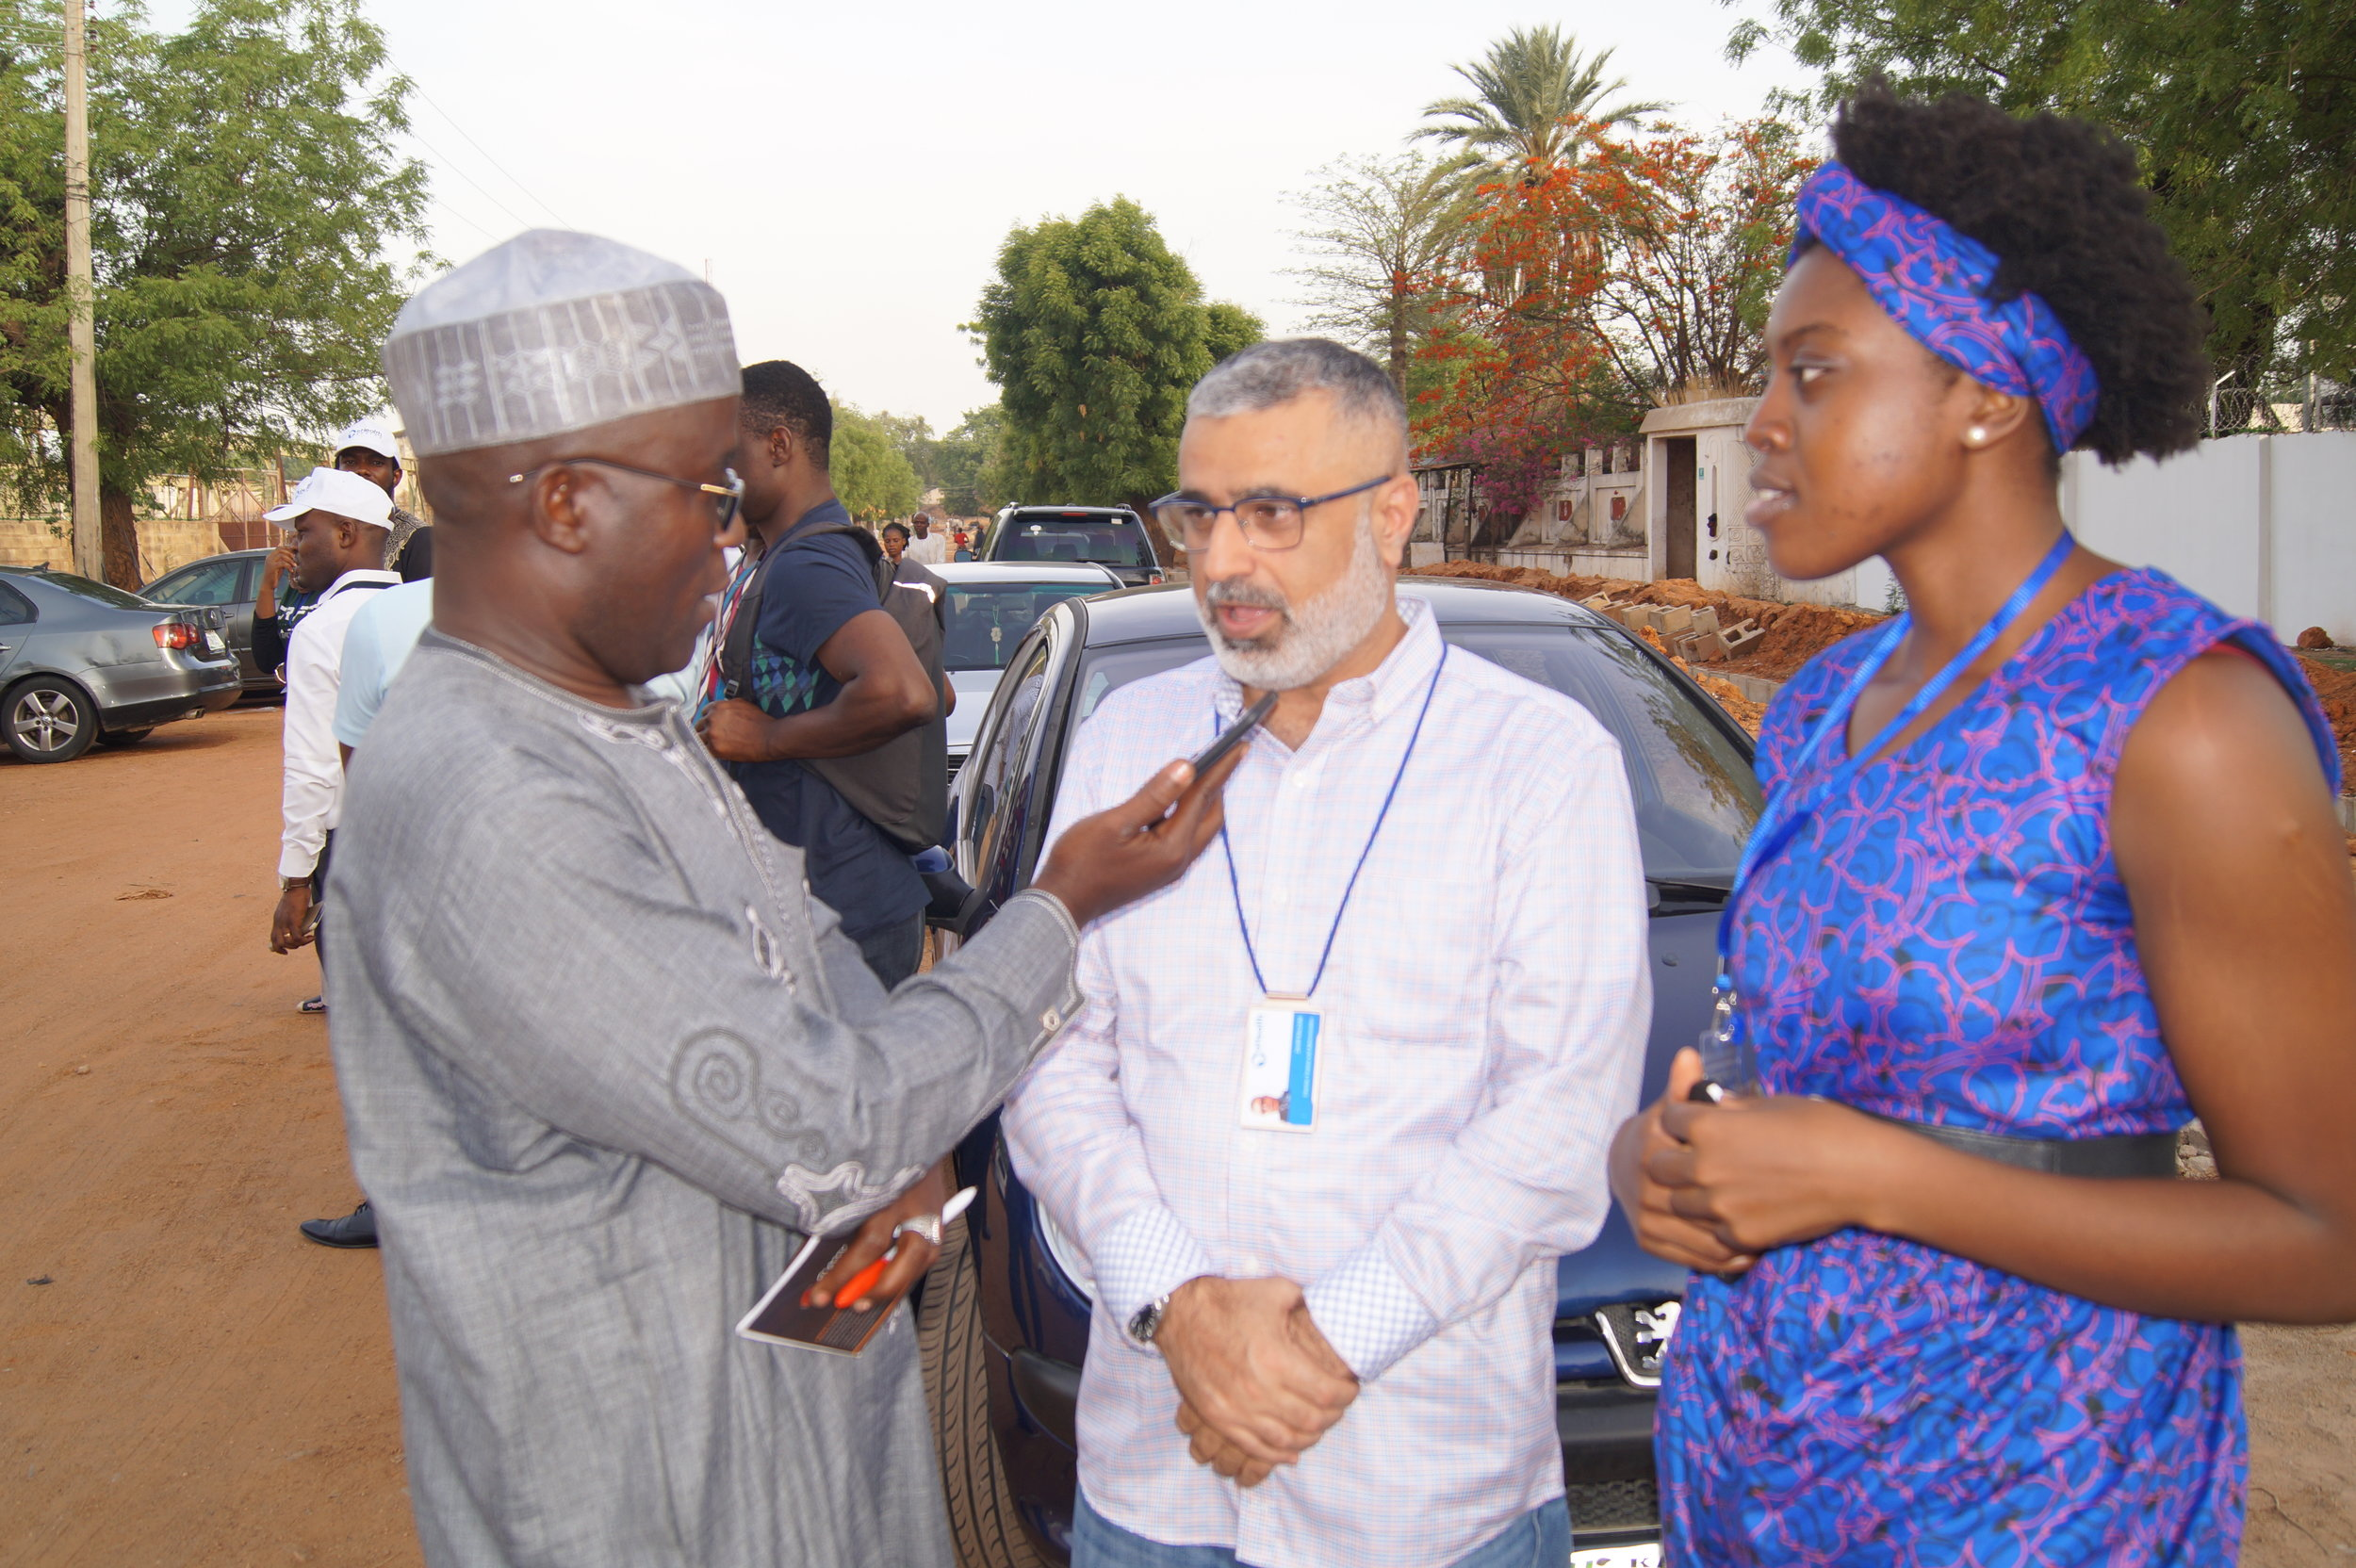 Zahir Baloum, Director, Finance and Administration and Hawa Kombian, Chief of Staff, grant an interview